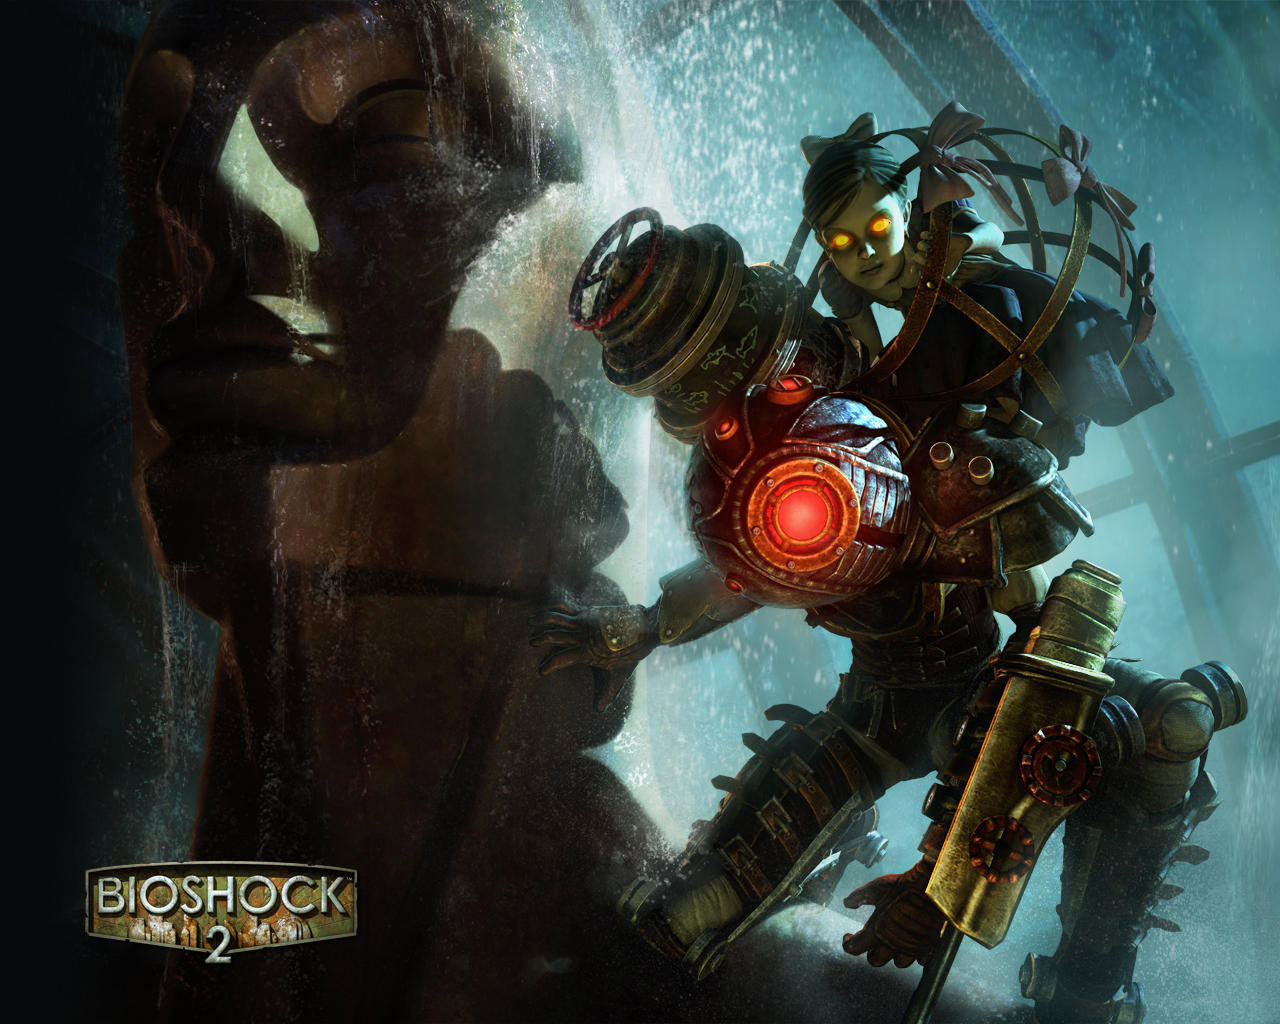 Bioshock Infinite HD & Widescreen Wallpaper 0.62319767439118